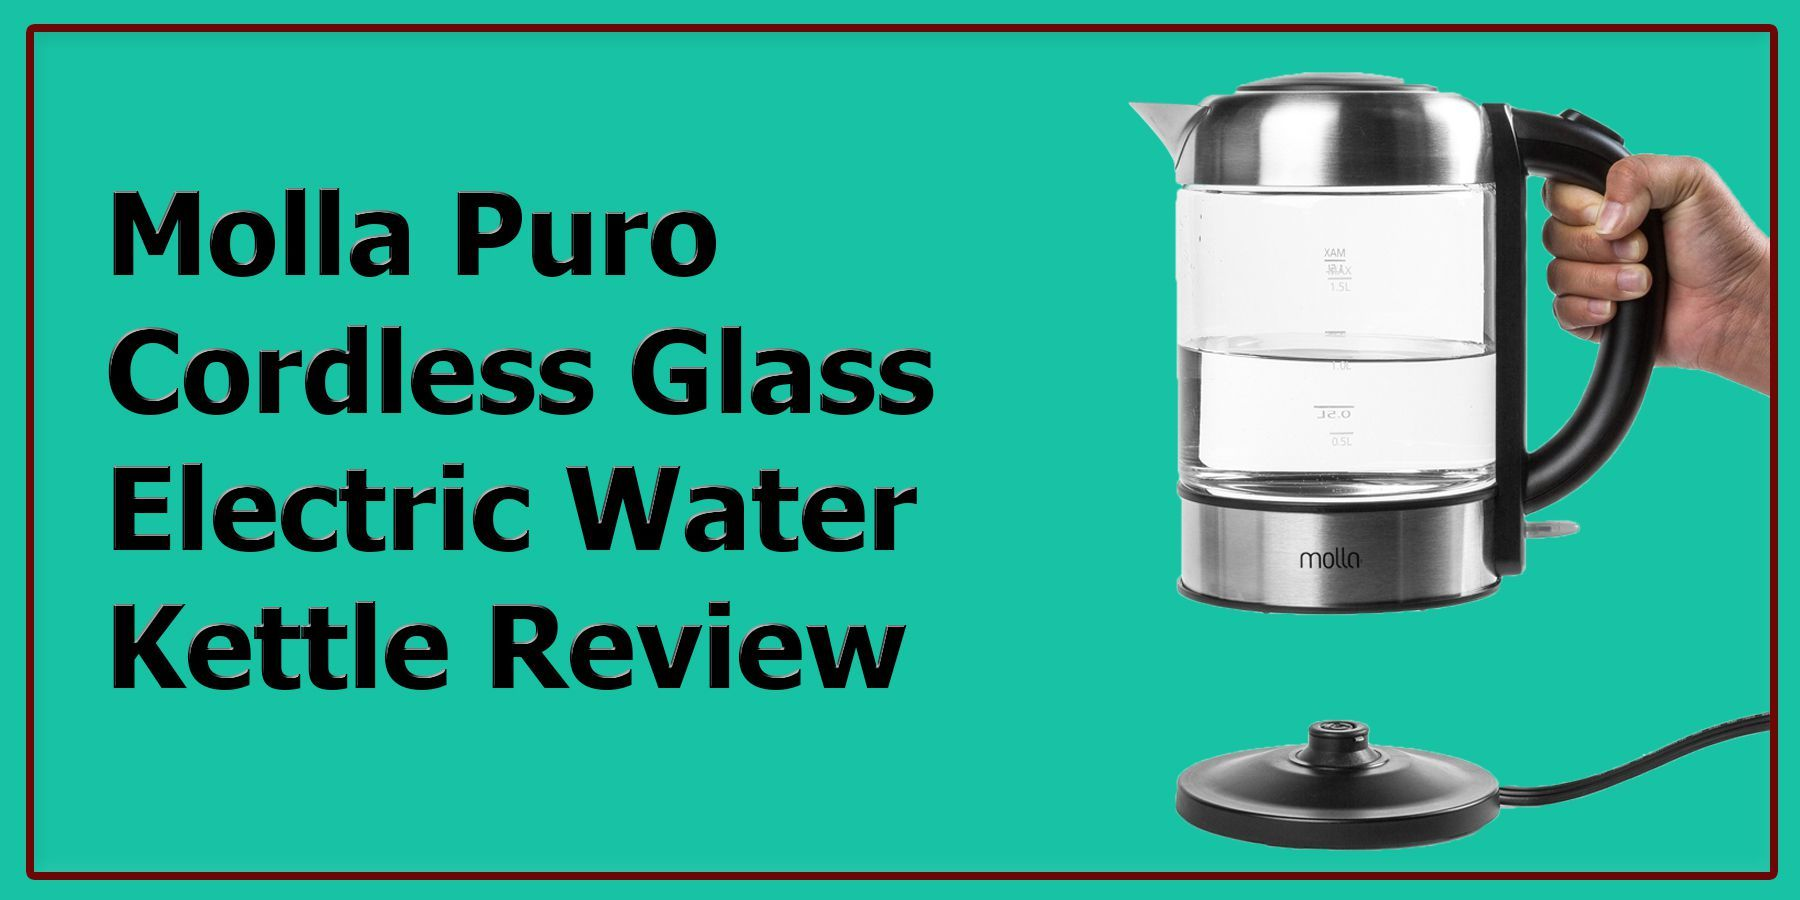 Molla Puro Cordless Glass Electric Water Kettle Review